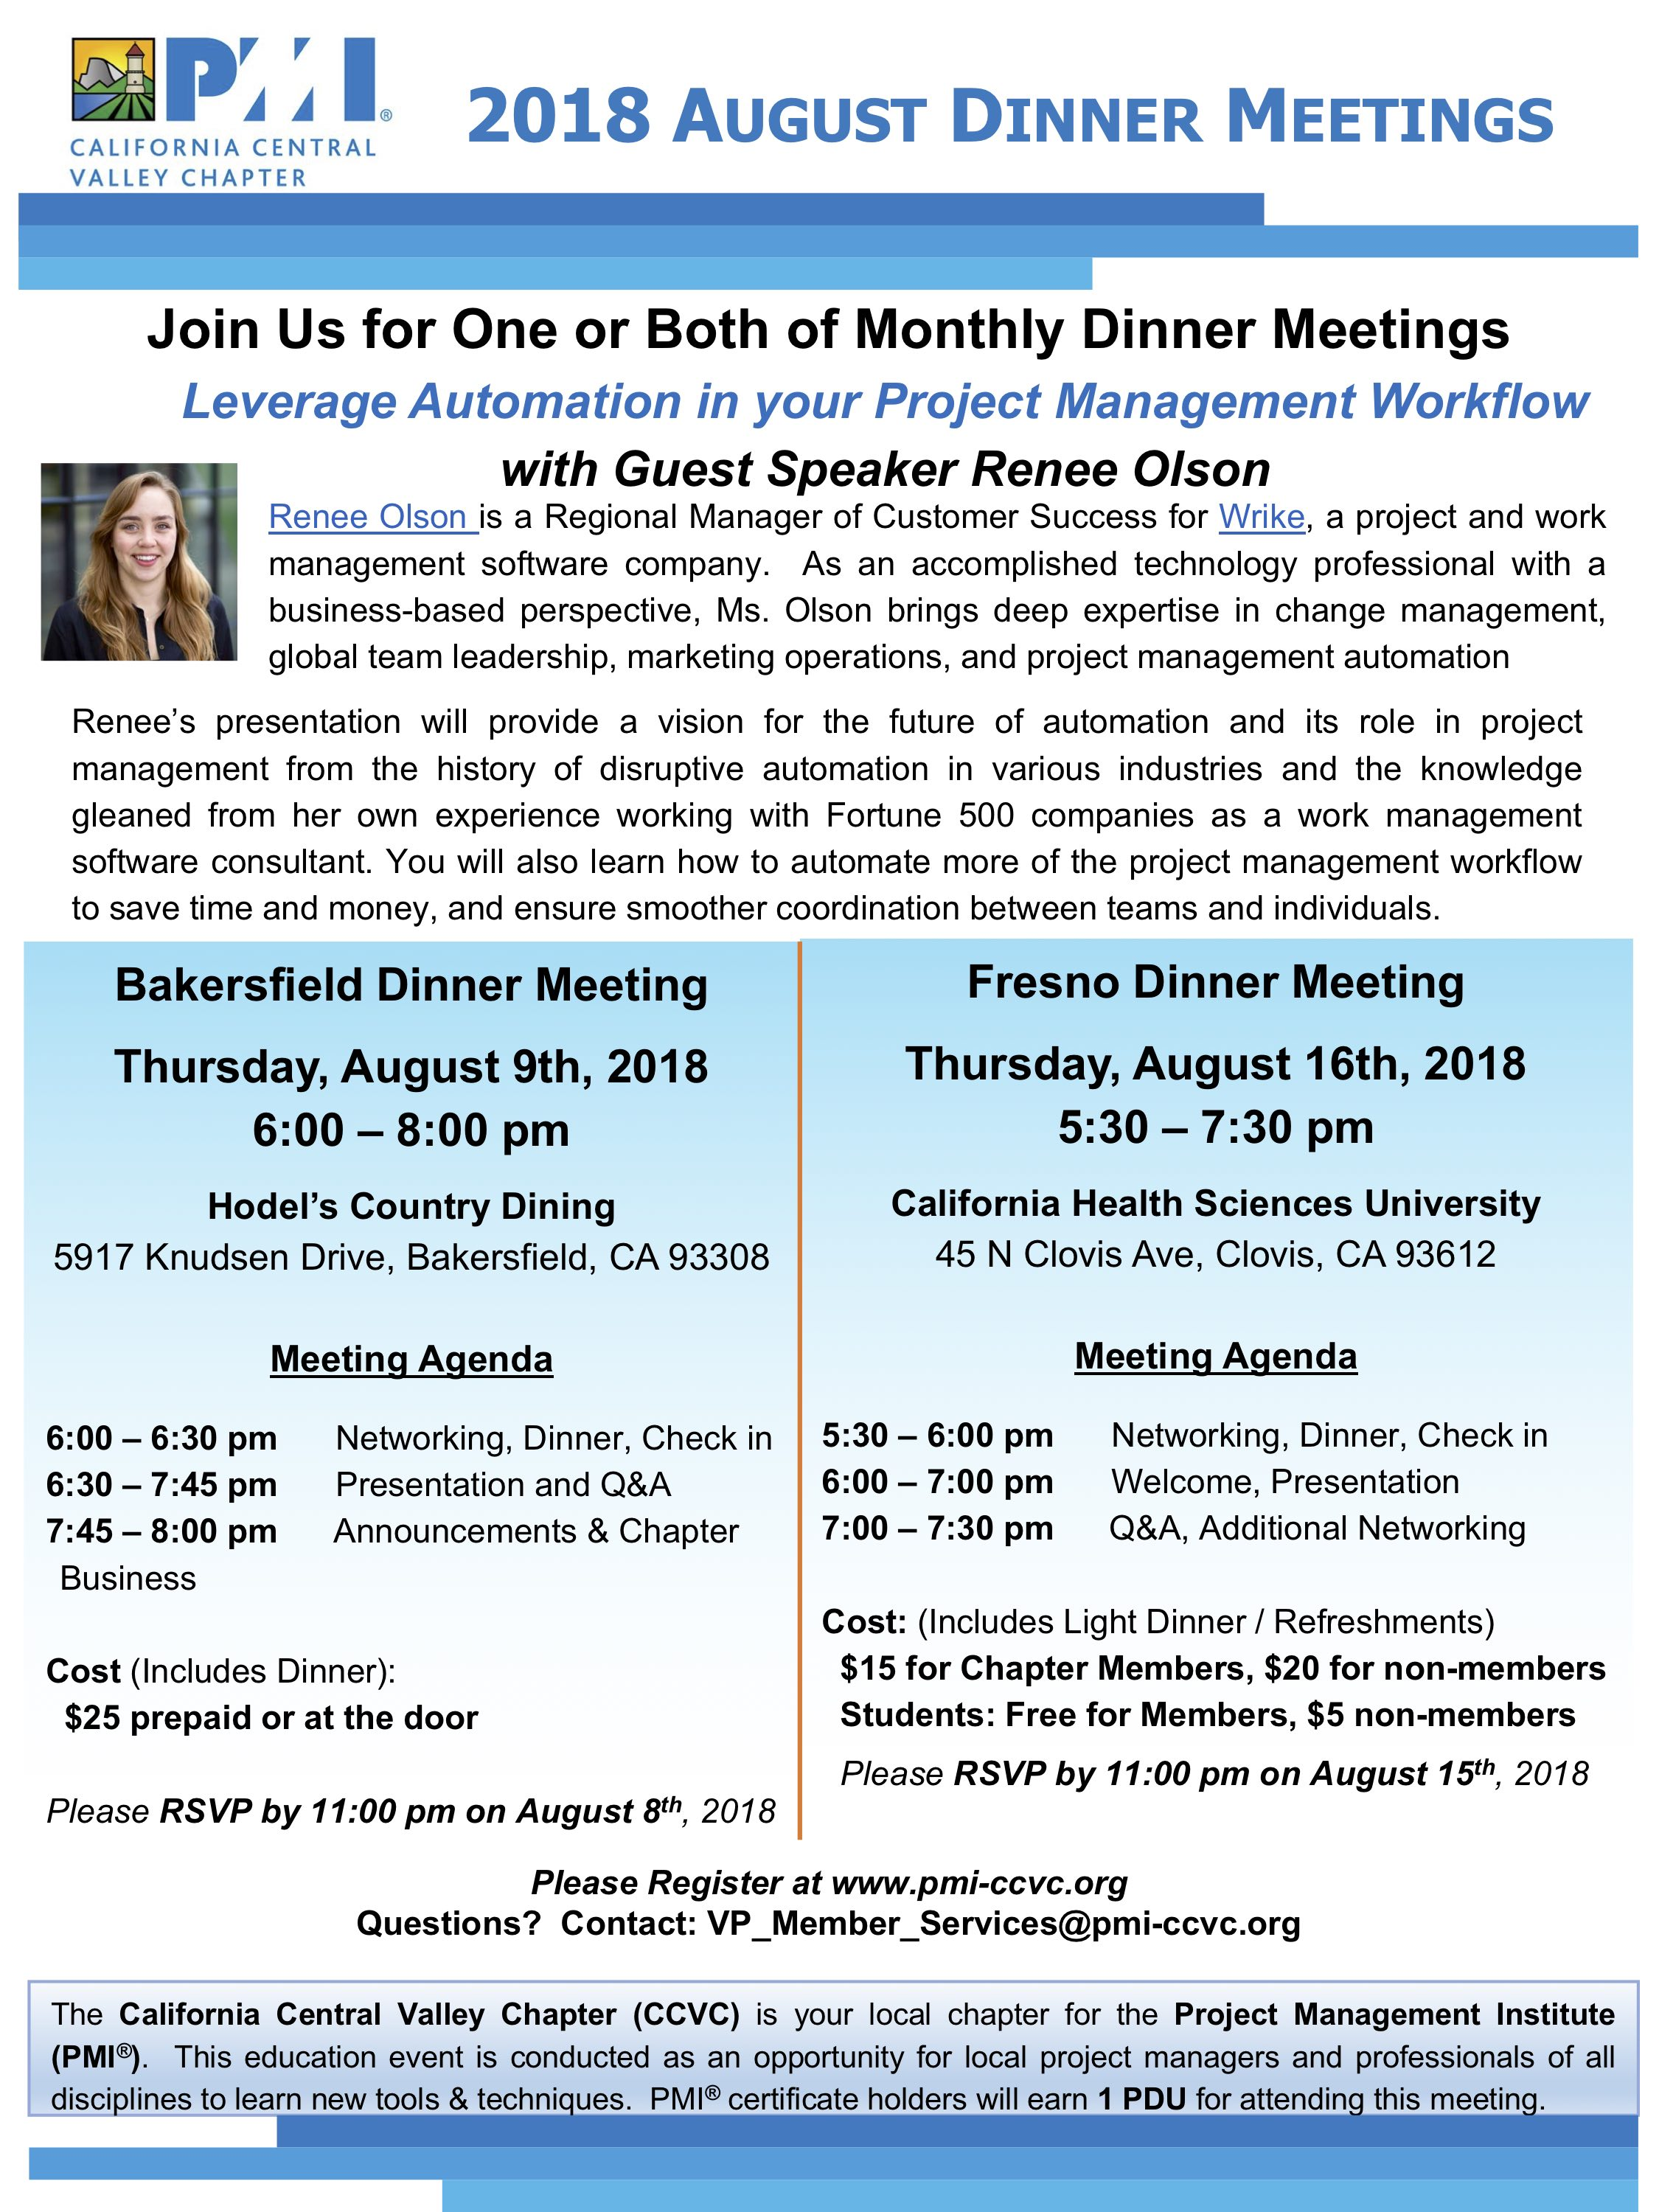 August 2018 Dinner Meetings Flyer